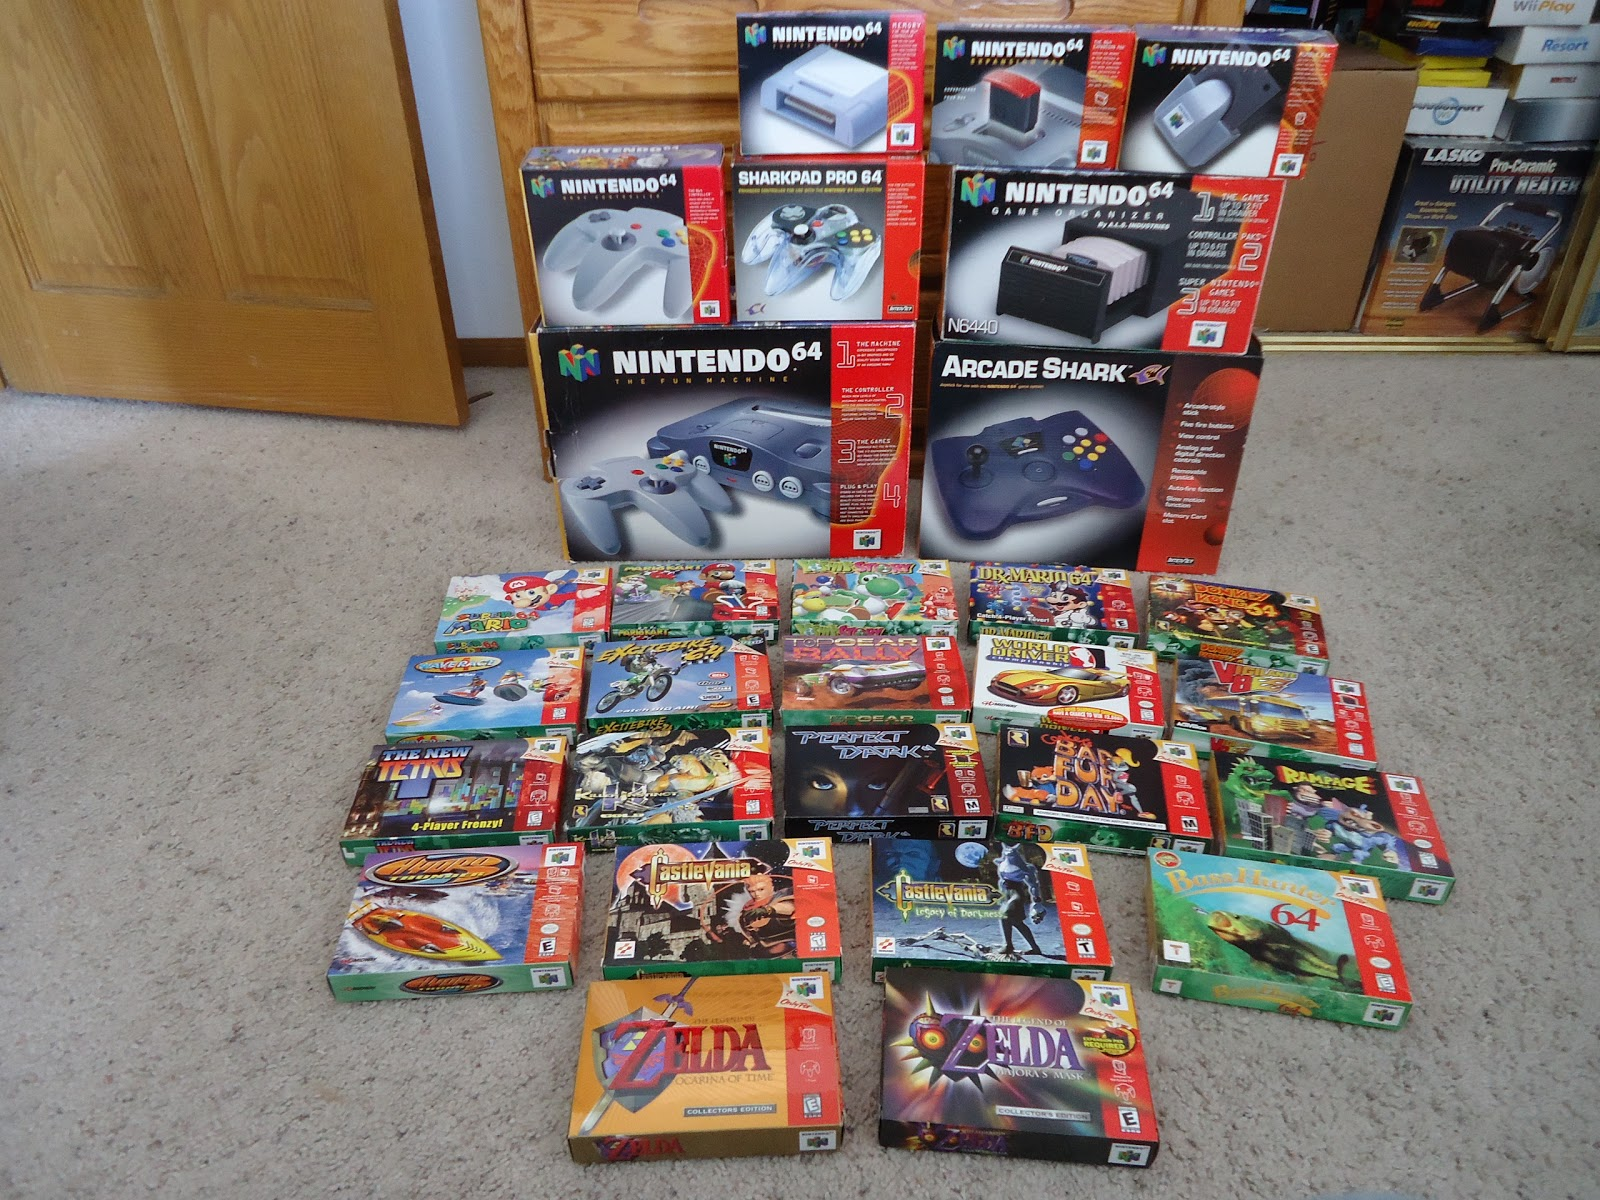 WatchmeplayNintendo: My Nintendo 64 Collection